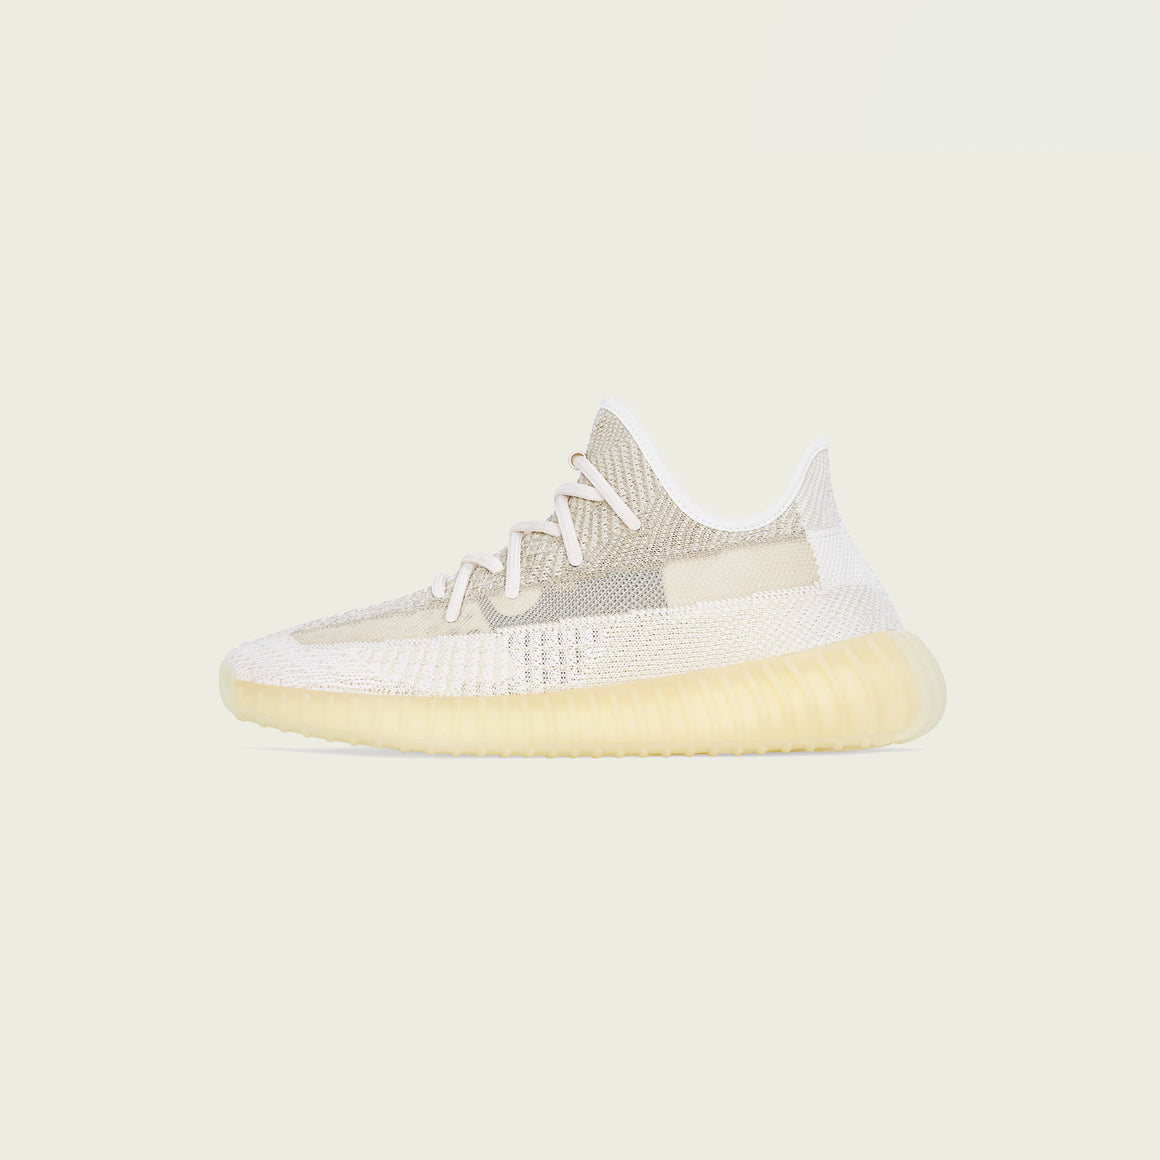 adidas - Yeezy Boost 350v2 - Natural - Up There